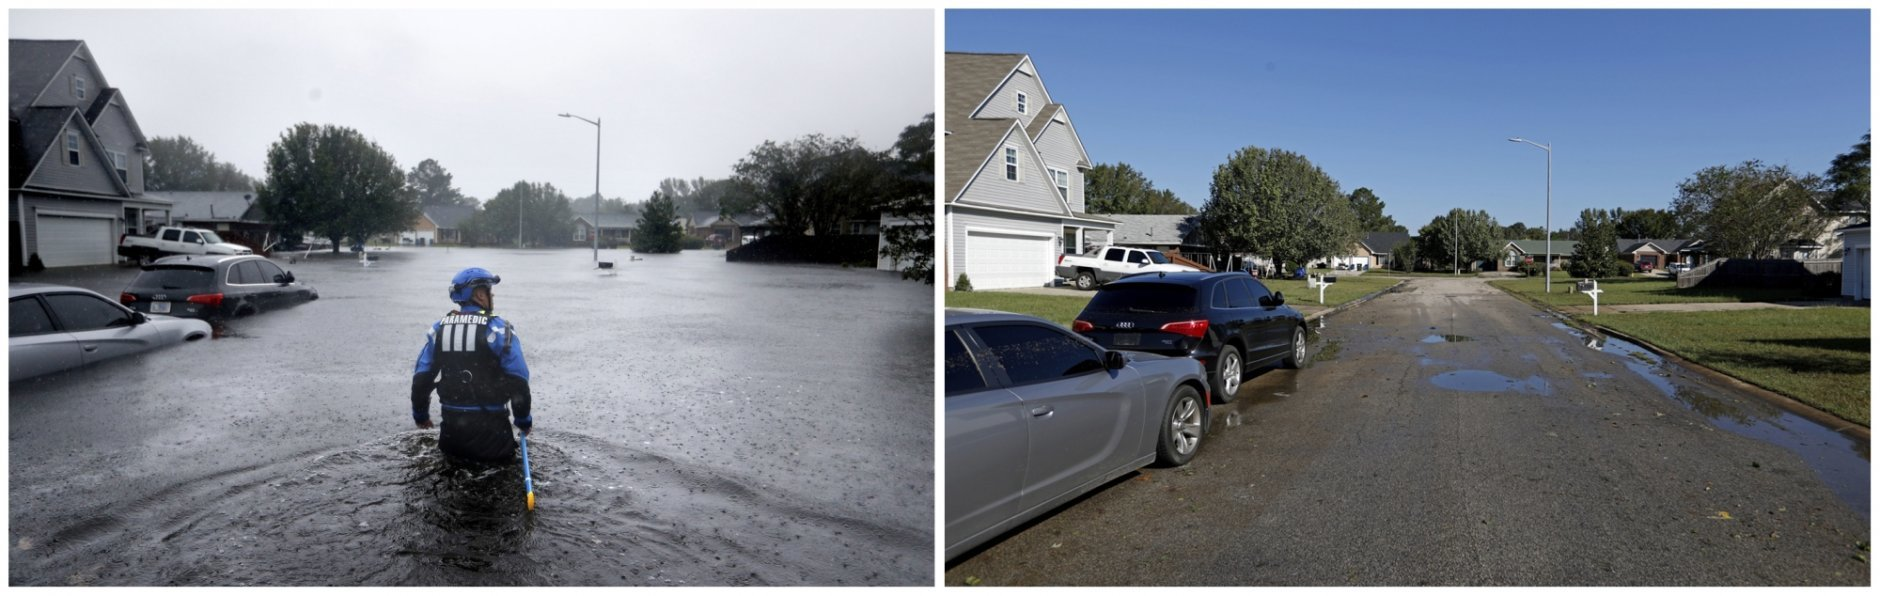 This combination of photos shows a member of the North Carolina Task Force urban search and rescue team on Sept. 16, 2018, left, and on Sept. 19, 2018, after the water receded in the aftermath of Hurricane Florence in Fayetteville, N.C. (AP Photos/David Goldman)